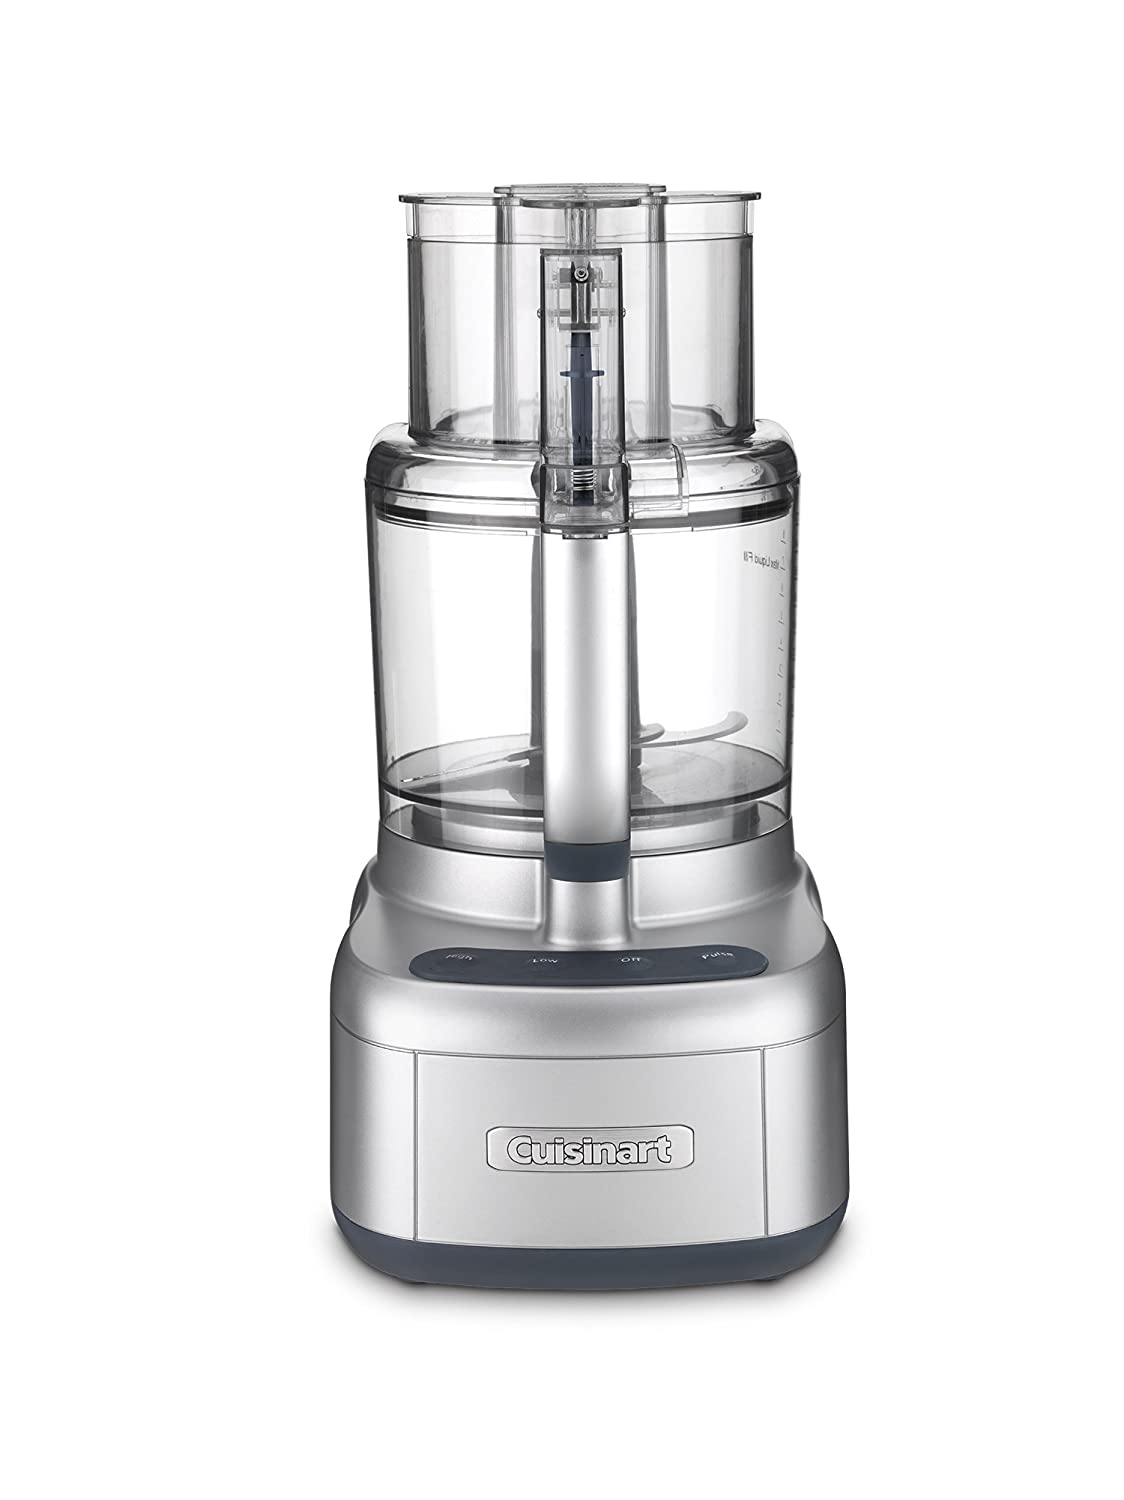 Cuisinart FP-11SVFR Elemental 11 Cup Food Processor; Silver(Certified Refurbished)